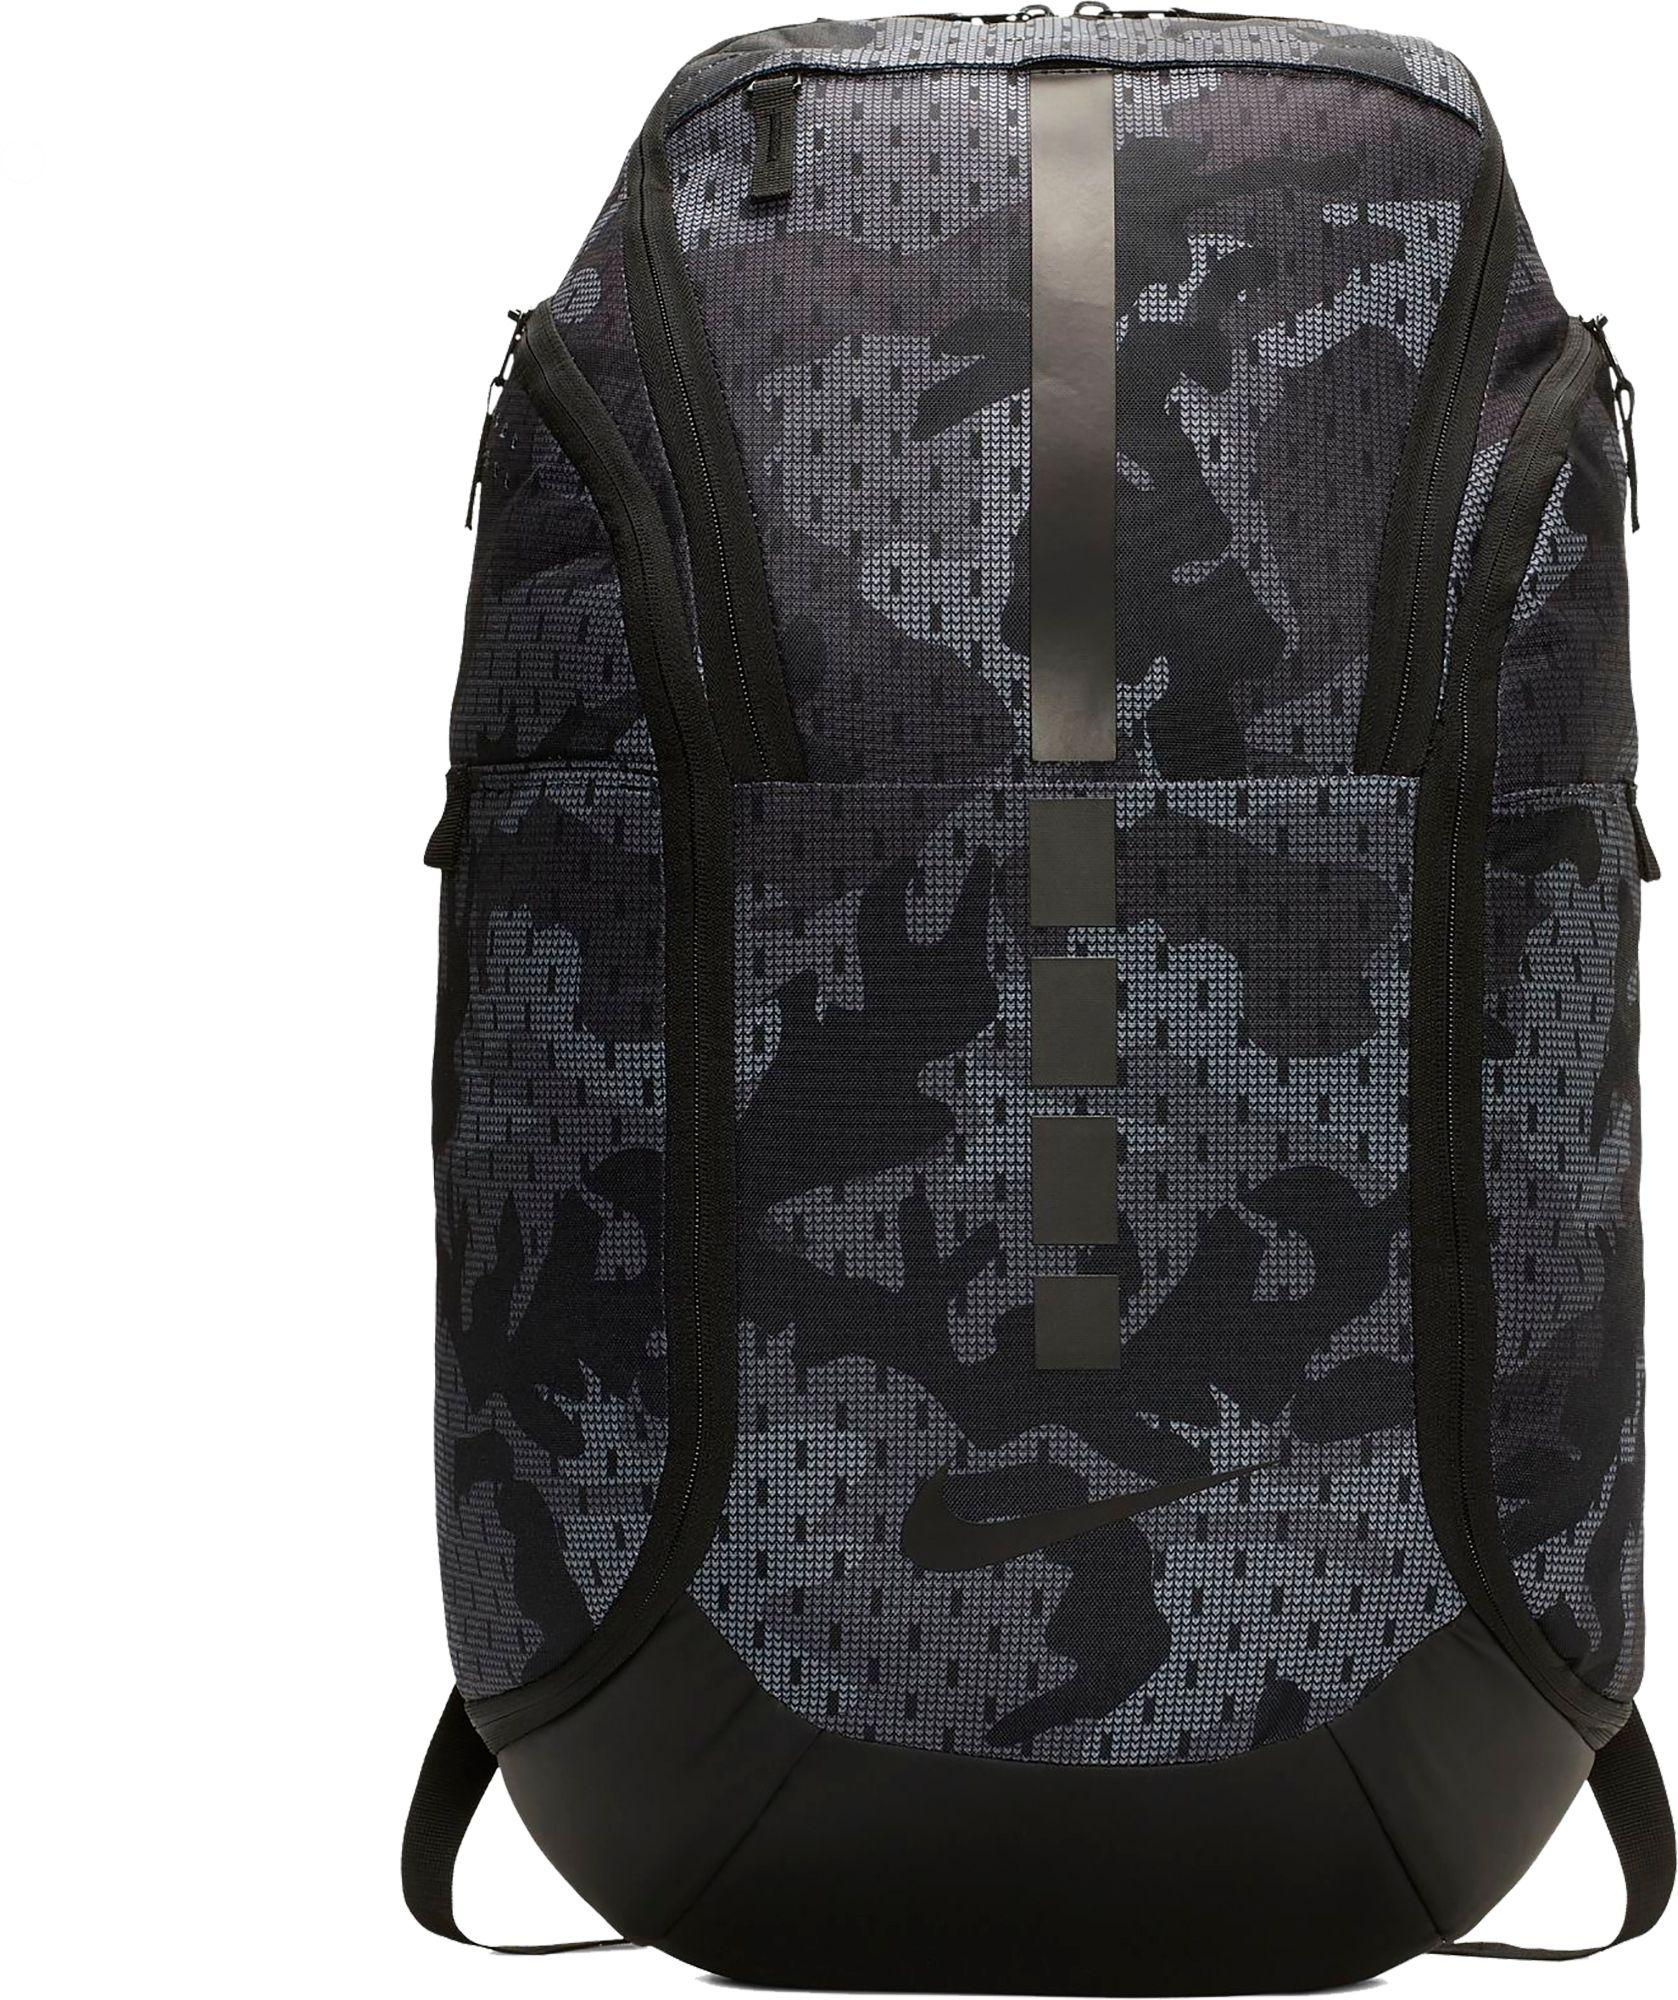 018e24f215 Lyst - Nike Hoops Elite Pro Camo Basketball Backpack in Gray for Men